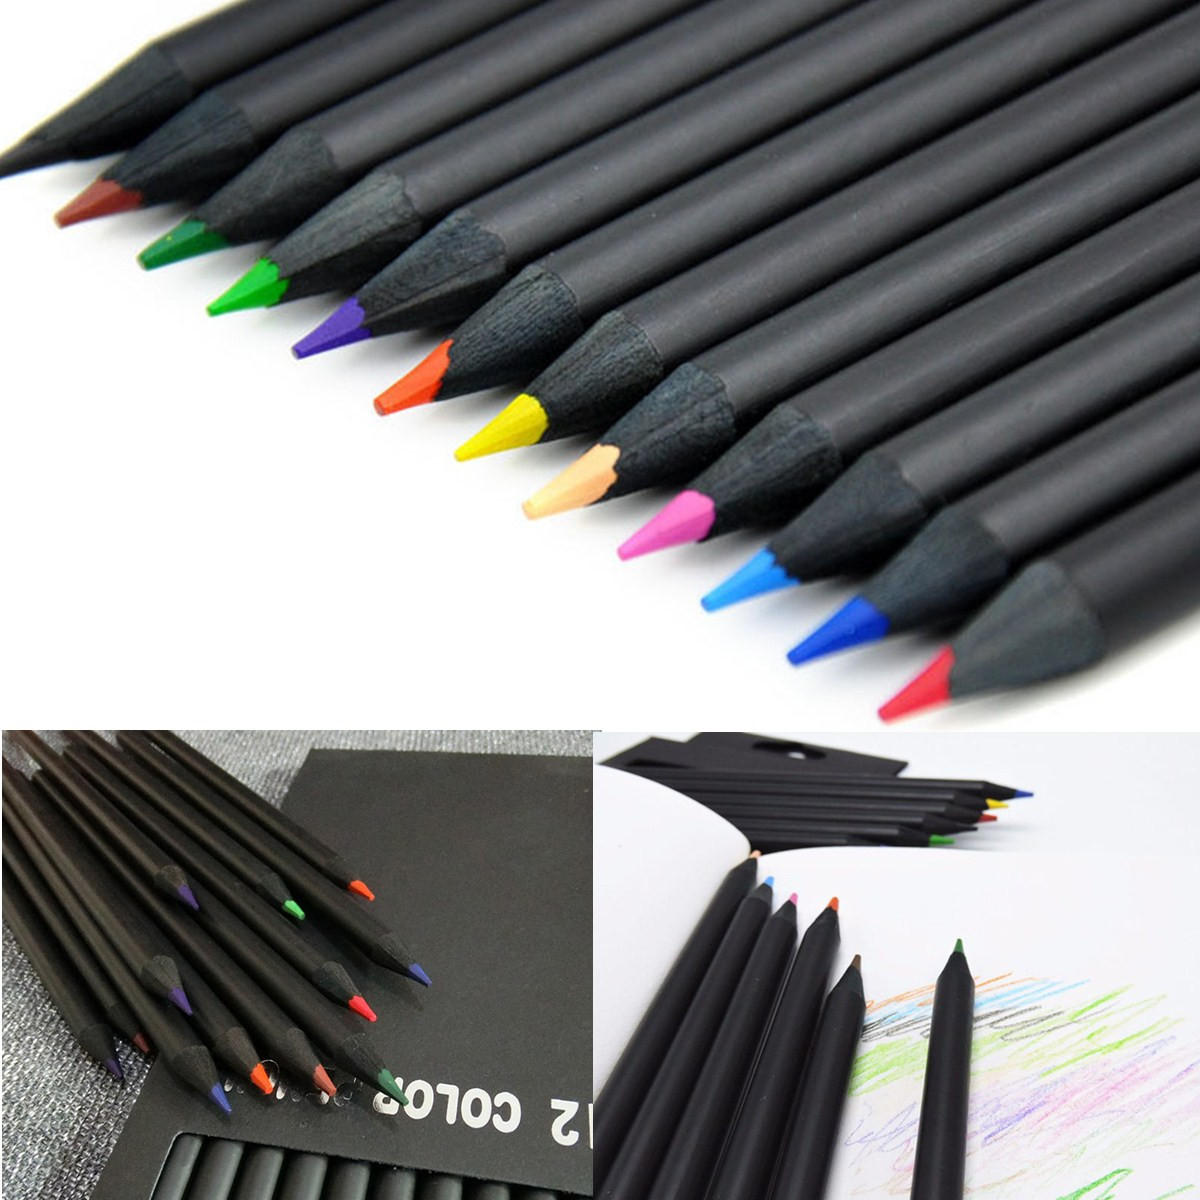 12 colors wooden drawing charcoal pencils black soft painting sketch fine art pencil cod